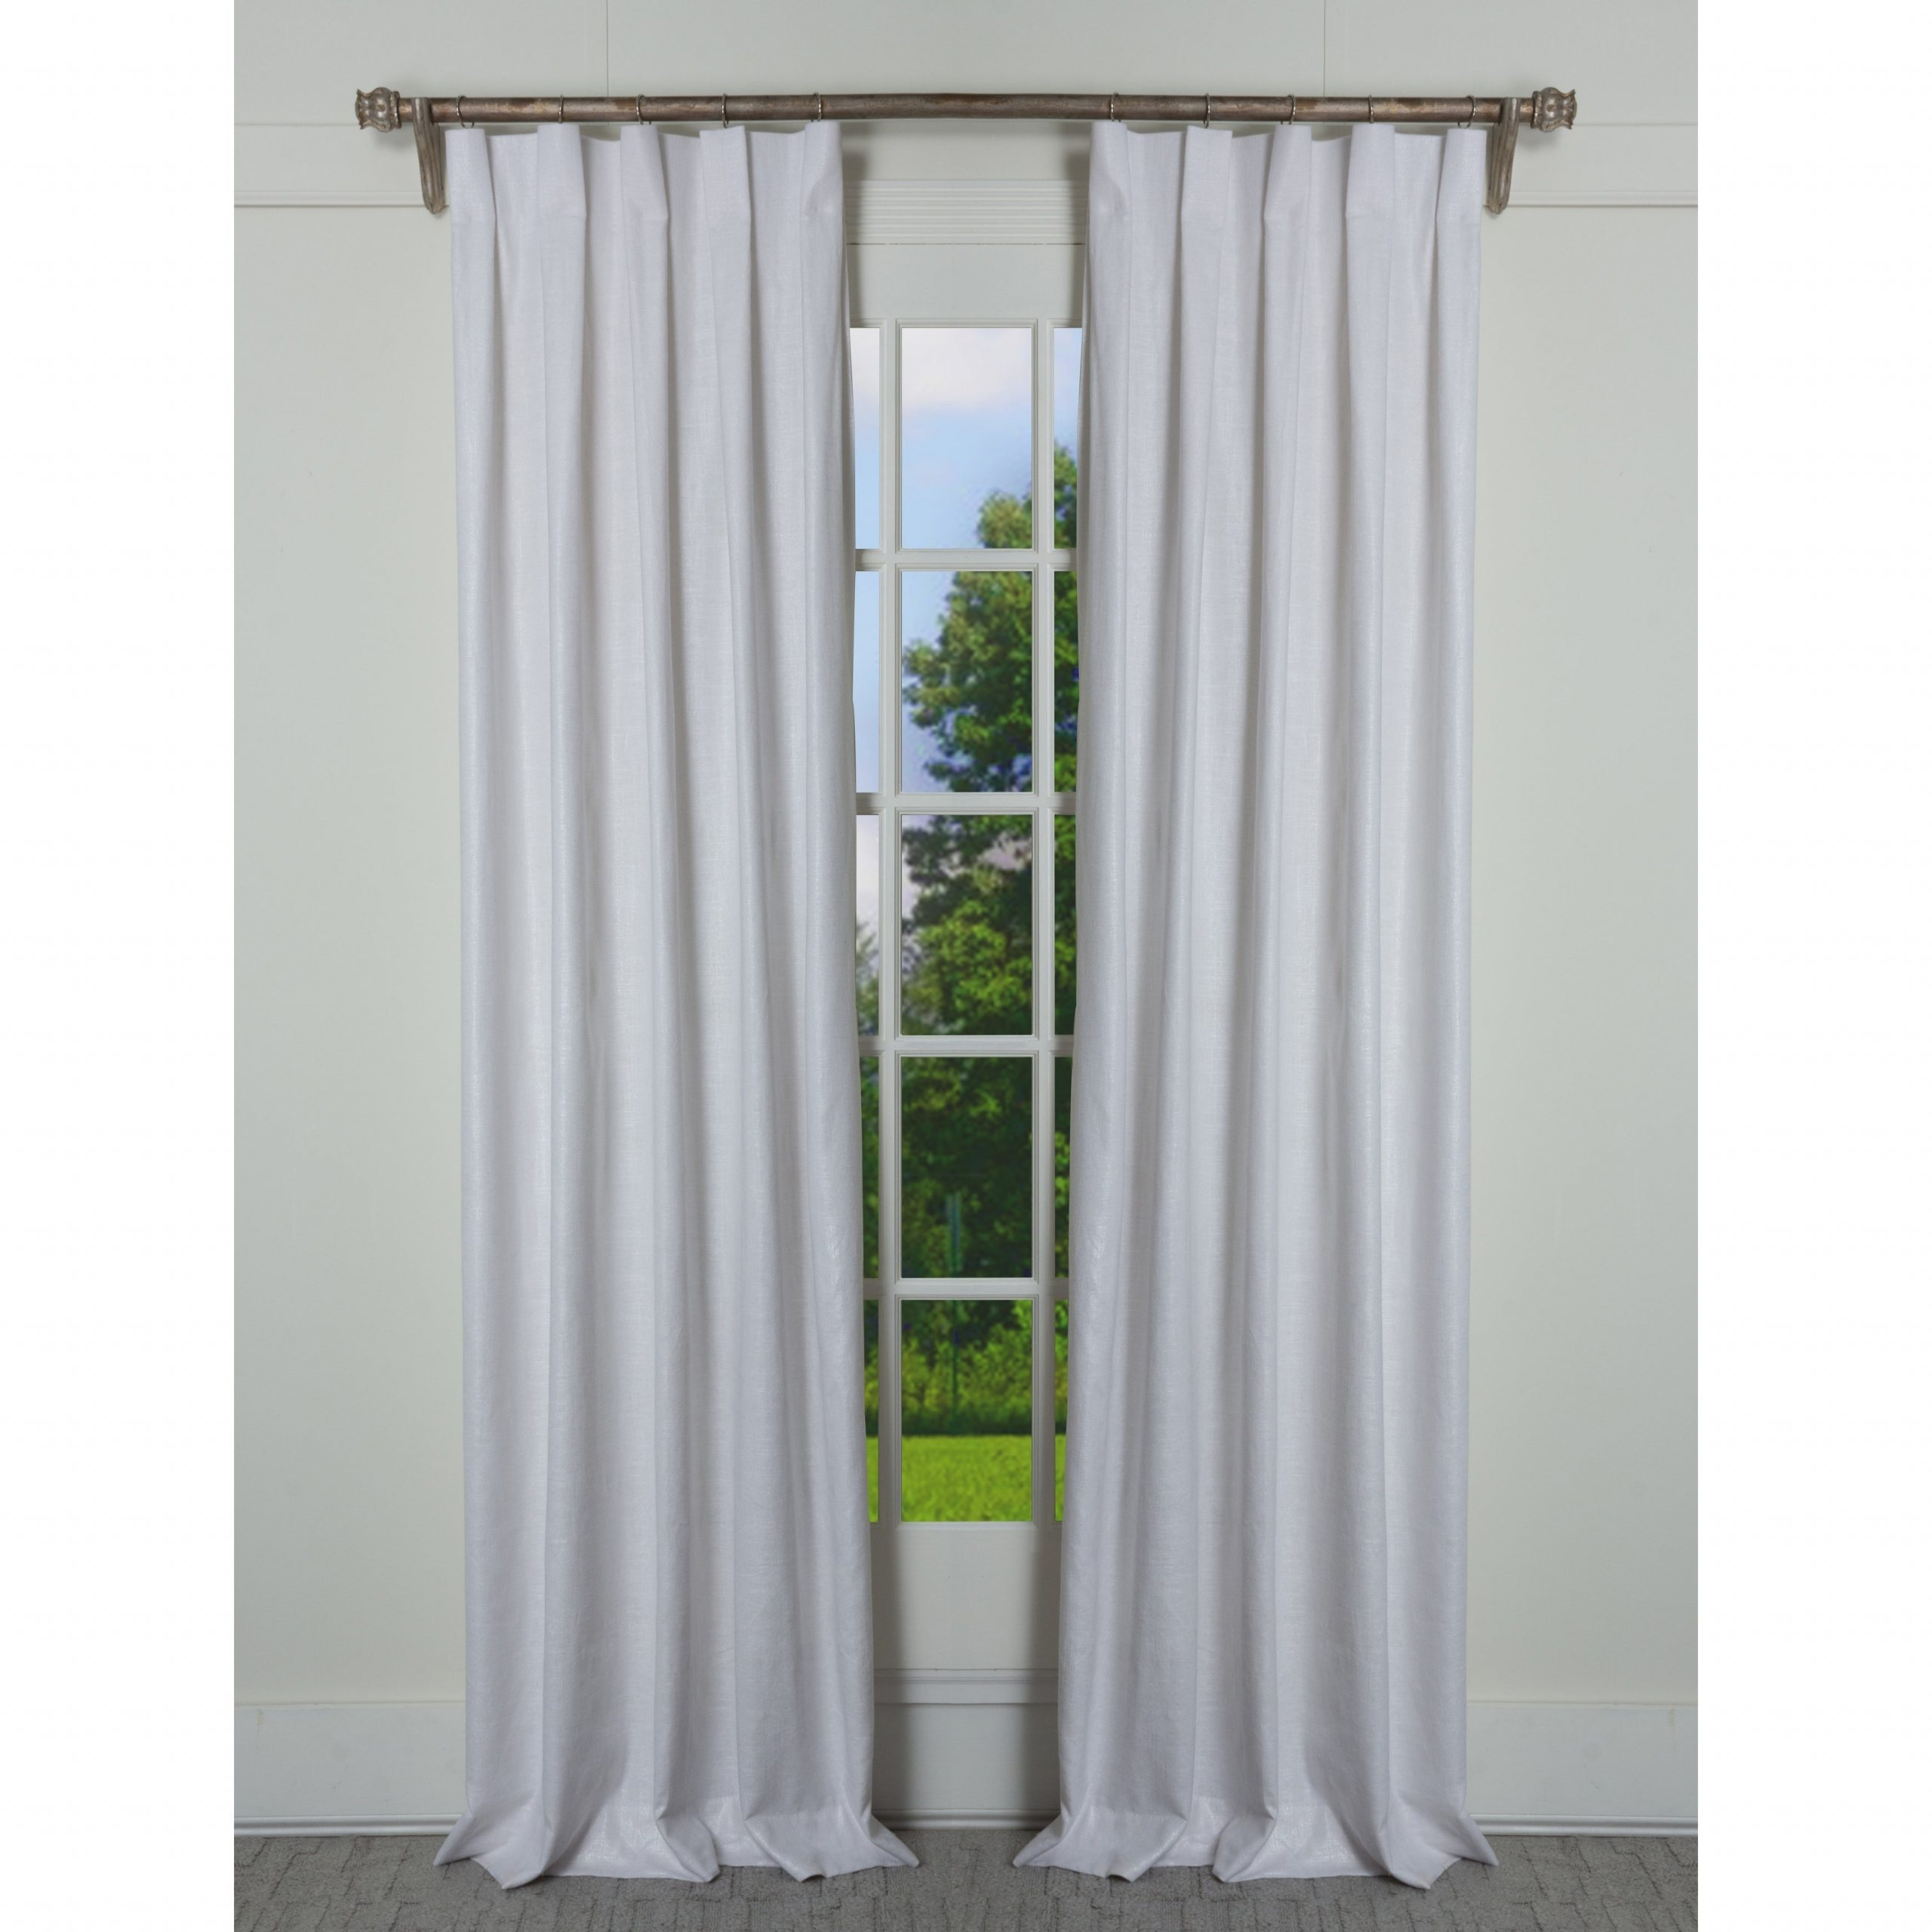 Most Recent Porch & Den Easystreet Metallic Cotton Box Pleated Single Curtain Panel Throughout Solid Cotton Pleated Curtains (View 12 of 20)